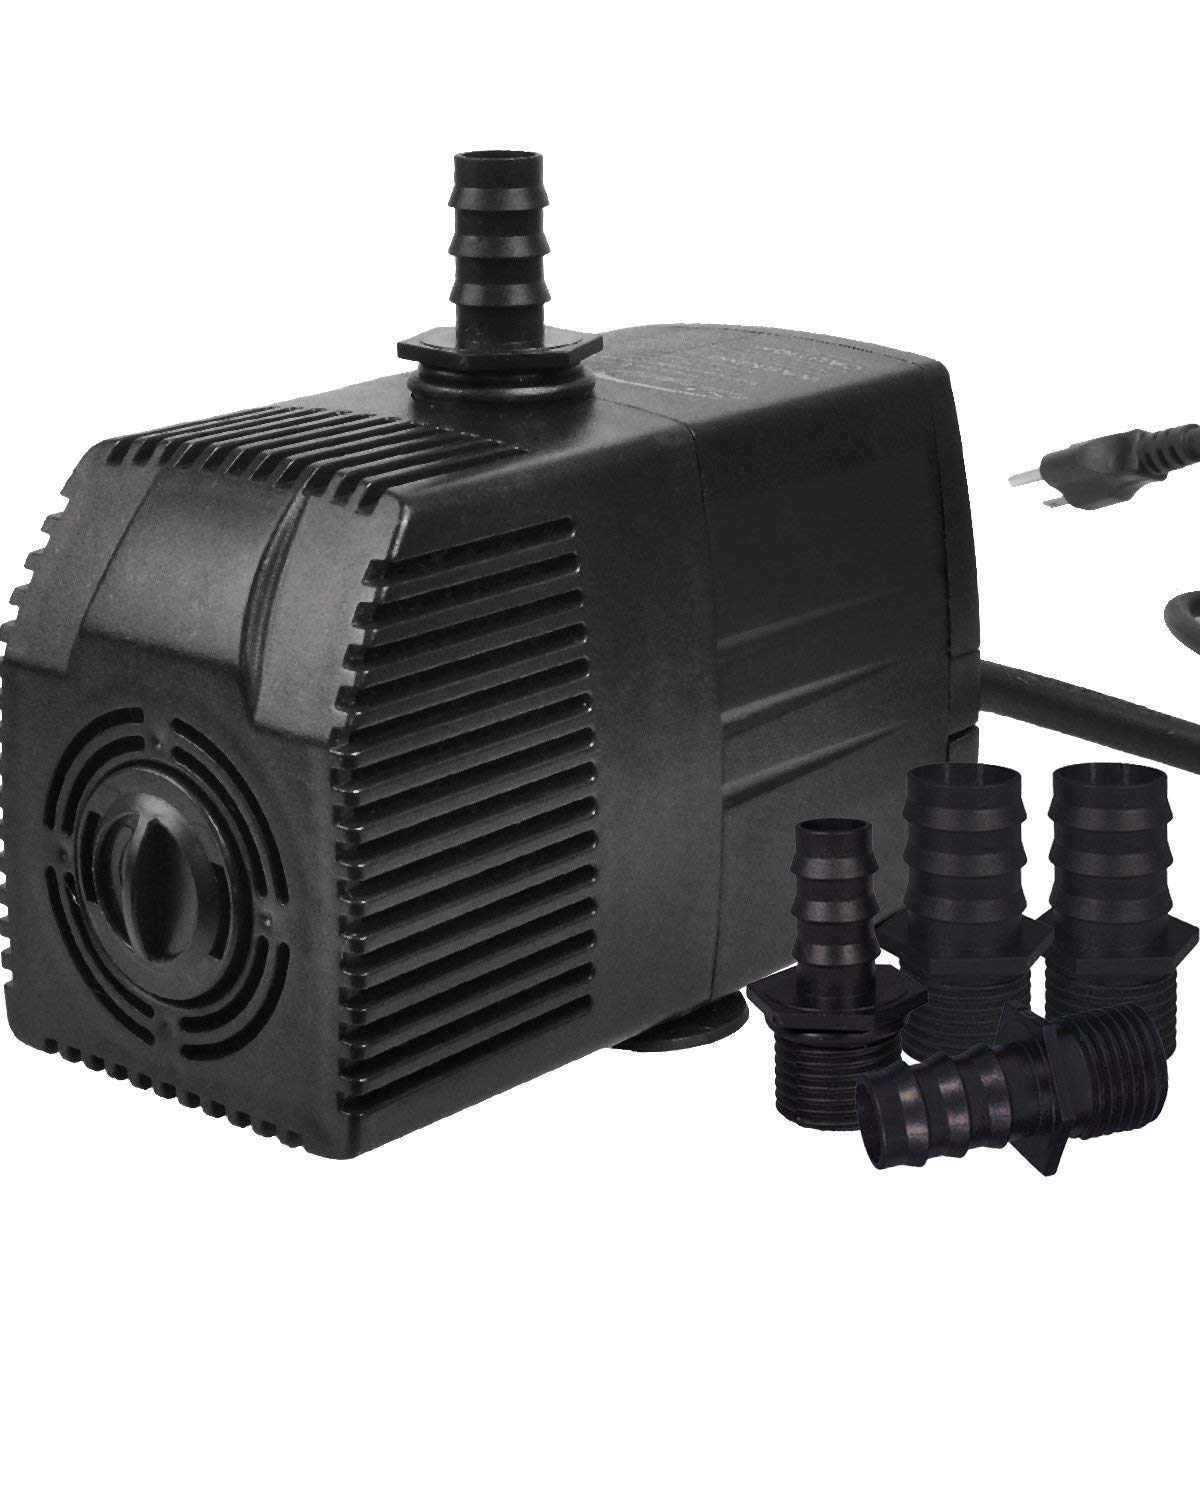 Simple Deluxe 400 GPH UL Listed Submersible Pump with Pre-Filter & 15' Waterproof Cord for Hydroponics, Aquaponics, Fountains, Ponds, Statuary, Aquariums & more (Renewed)